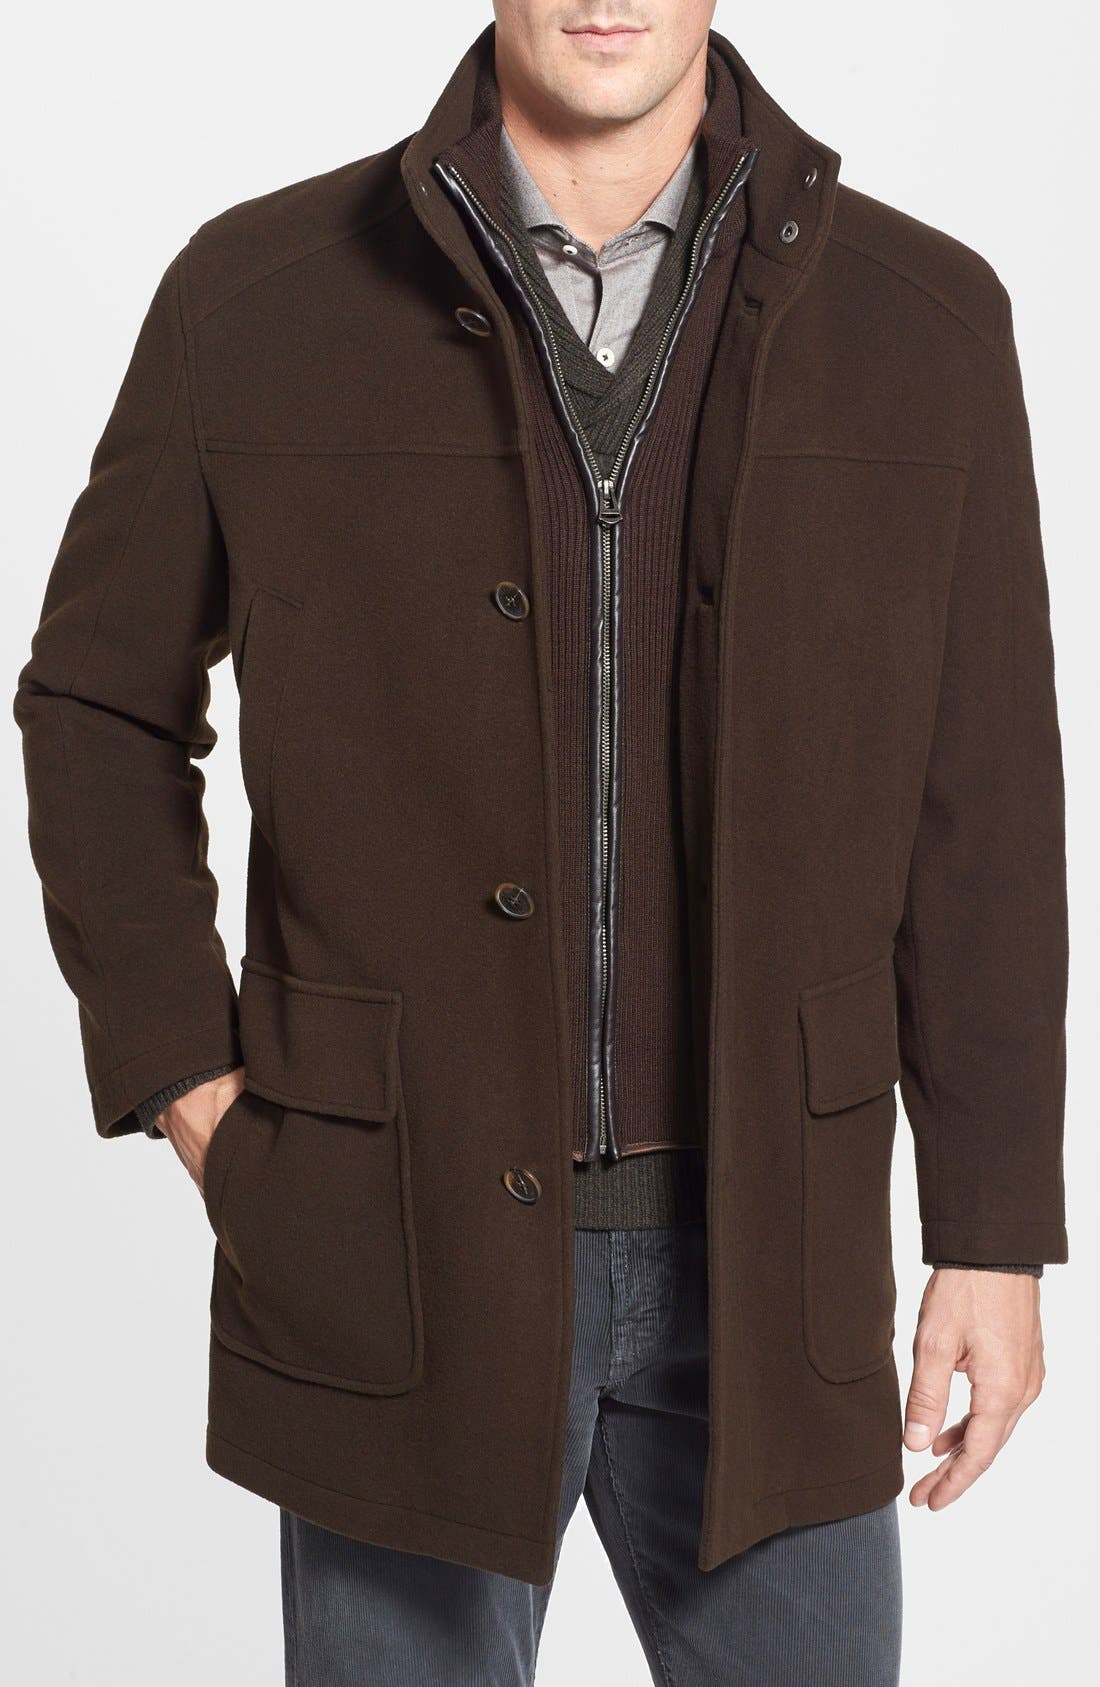 Wool Blend Topcoat with Inset Bib,                         Main,                         color, Espresso